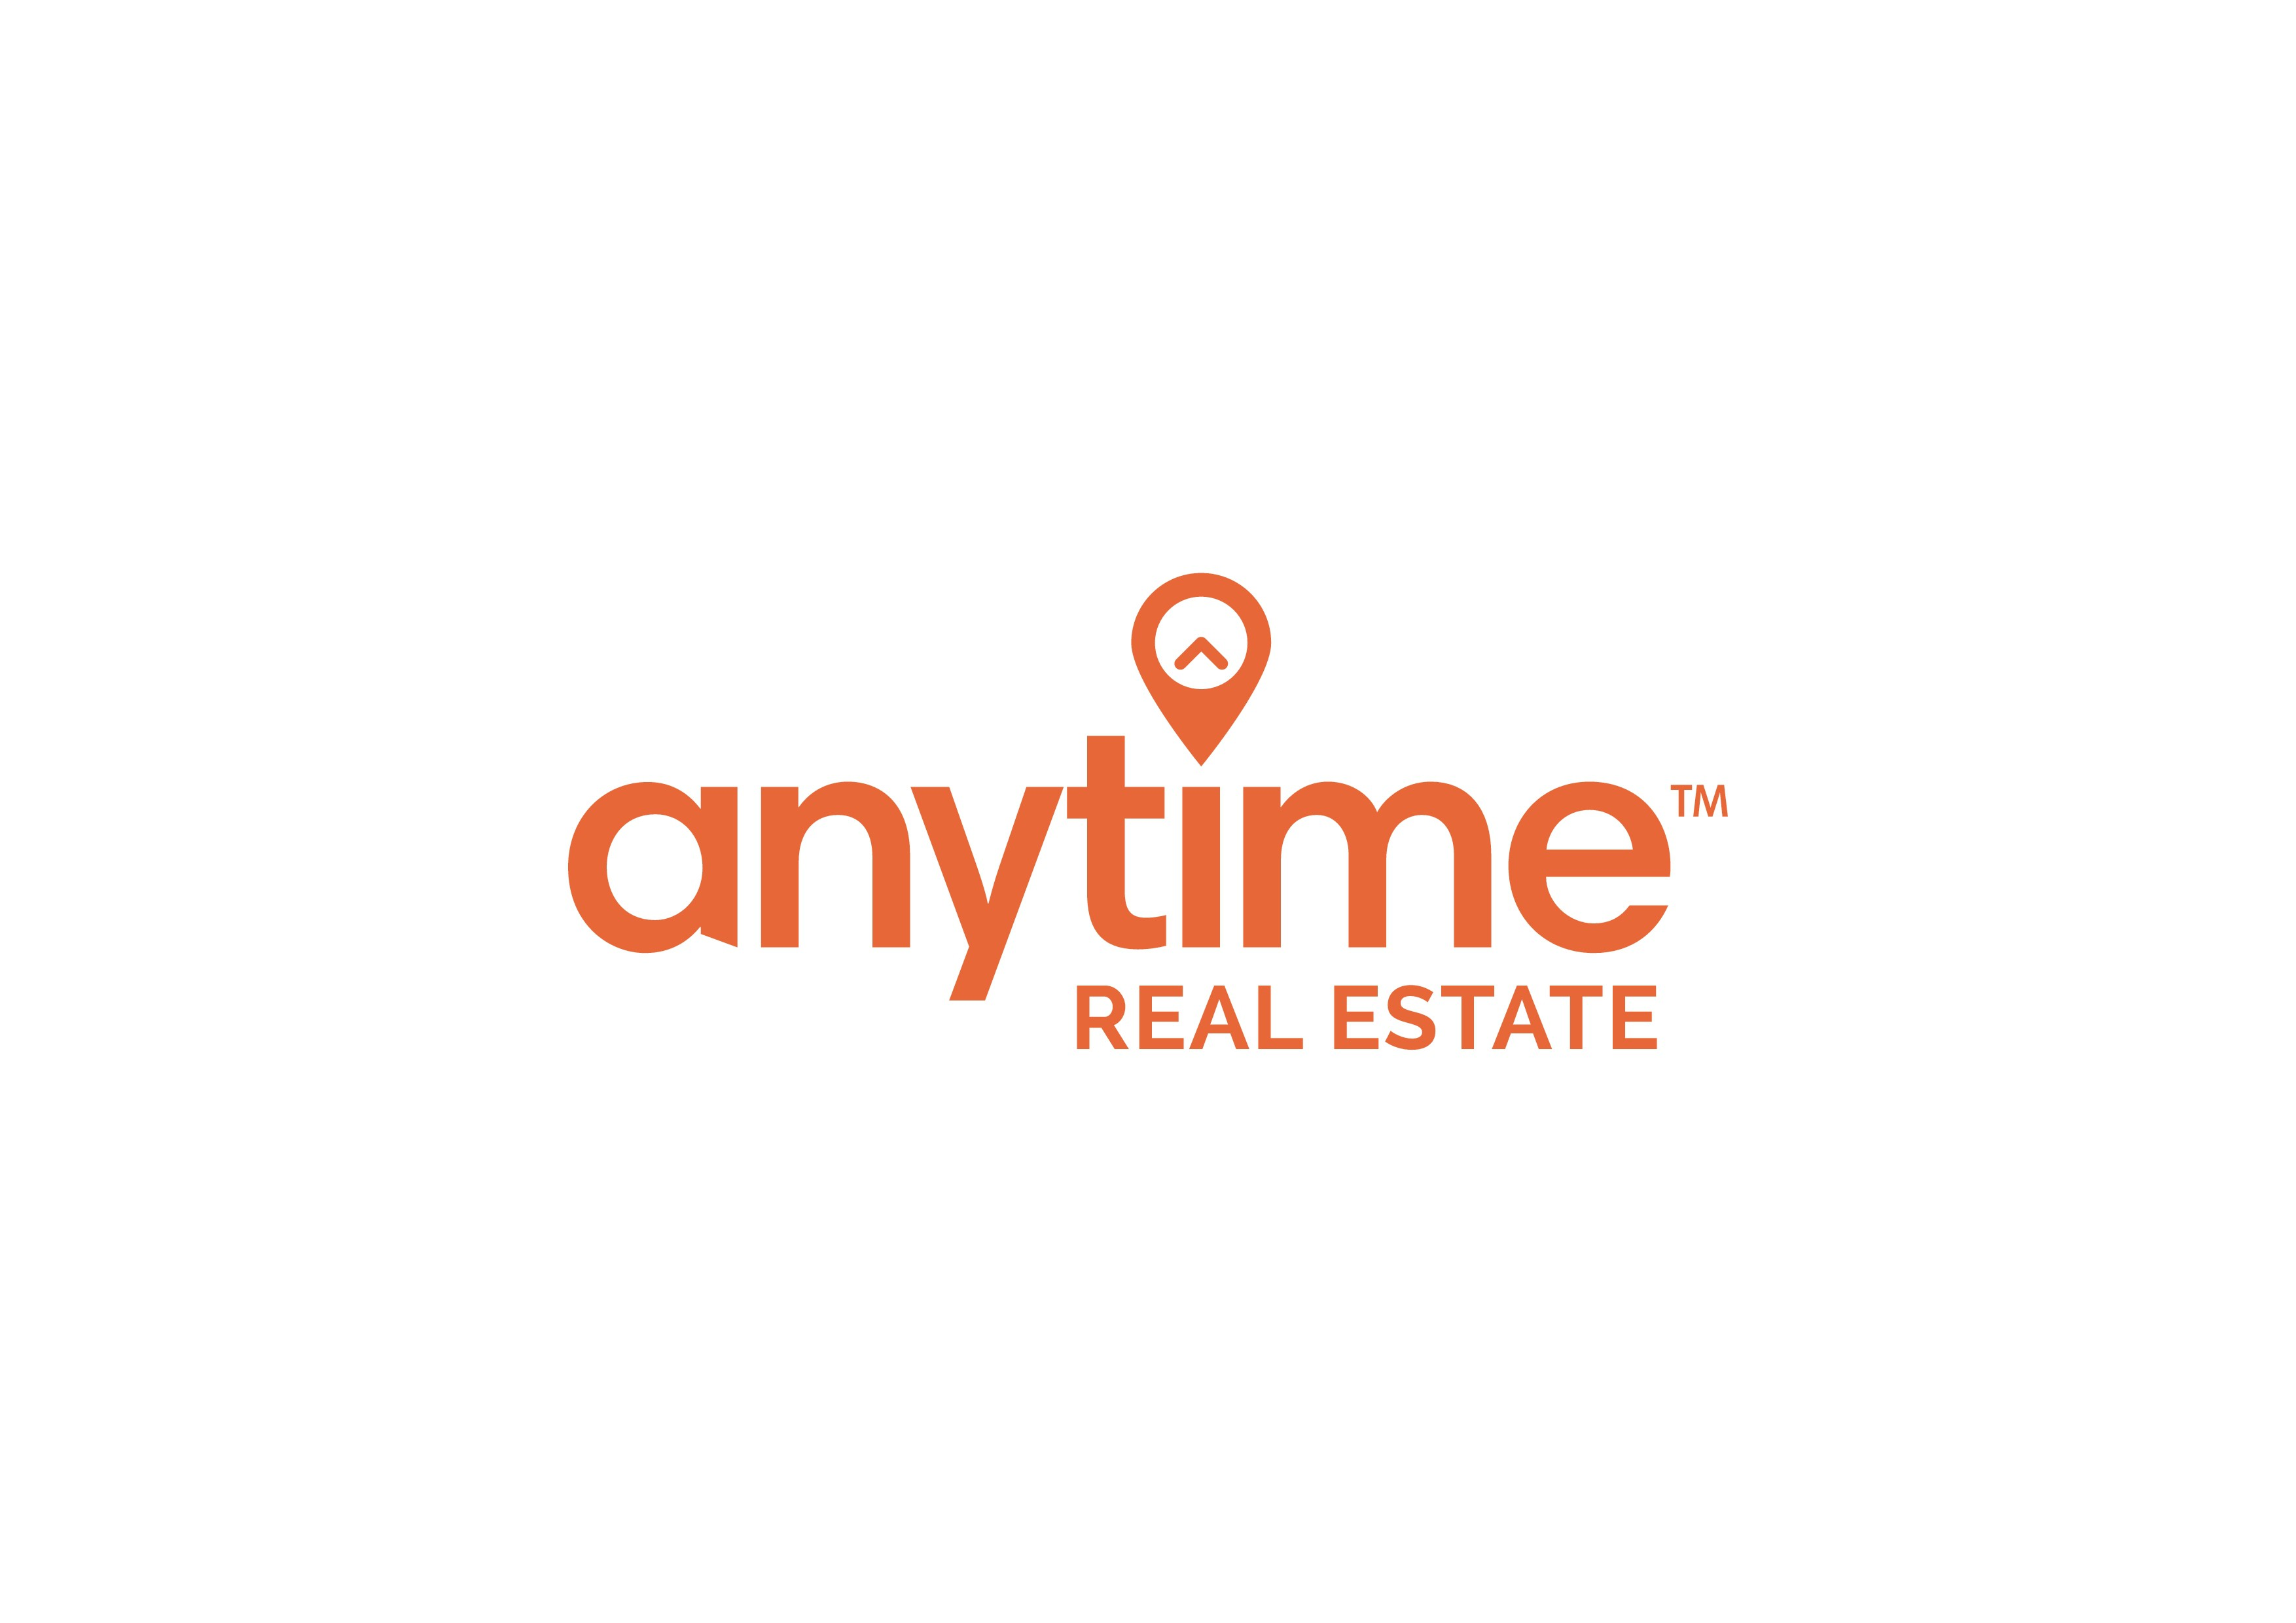 Creating a NATIONAL logo for a Real Estate Franchise that will be viral within 1 year!!!